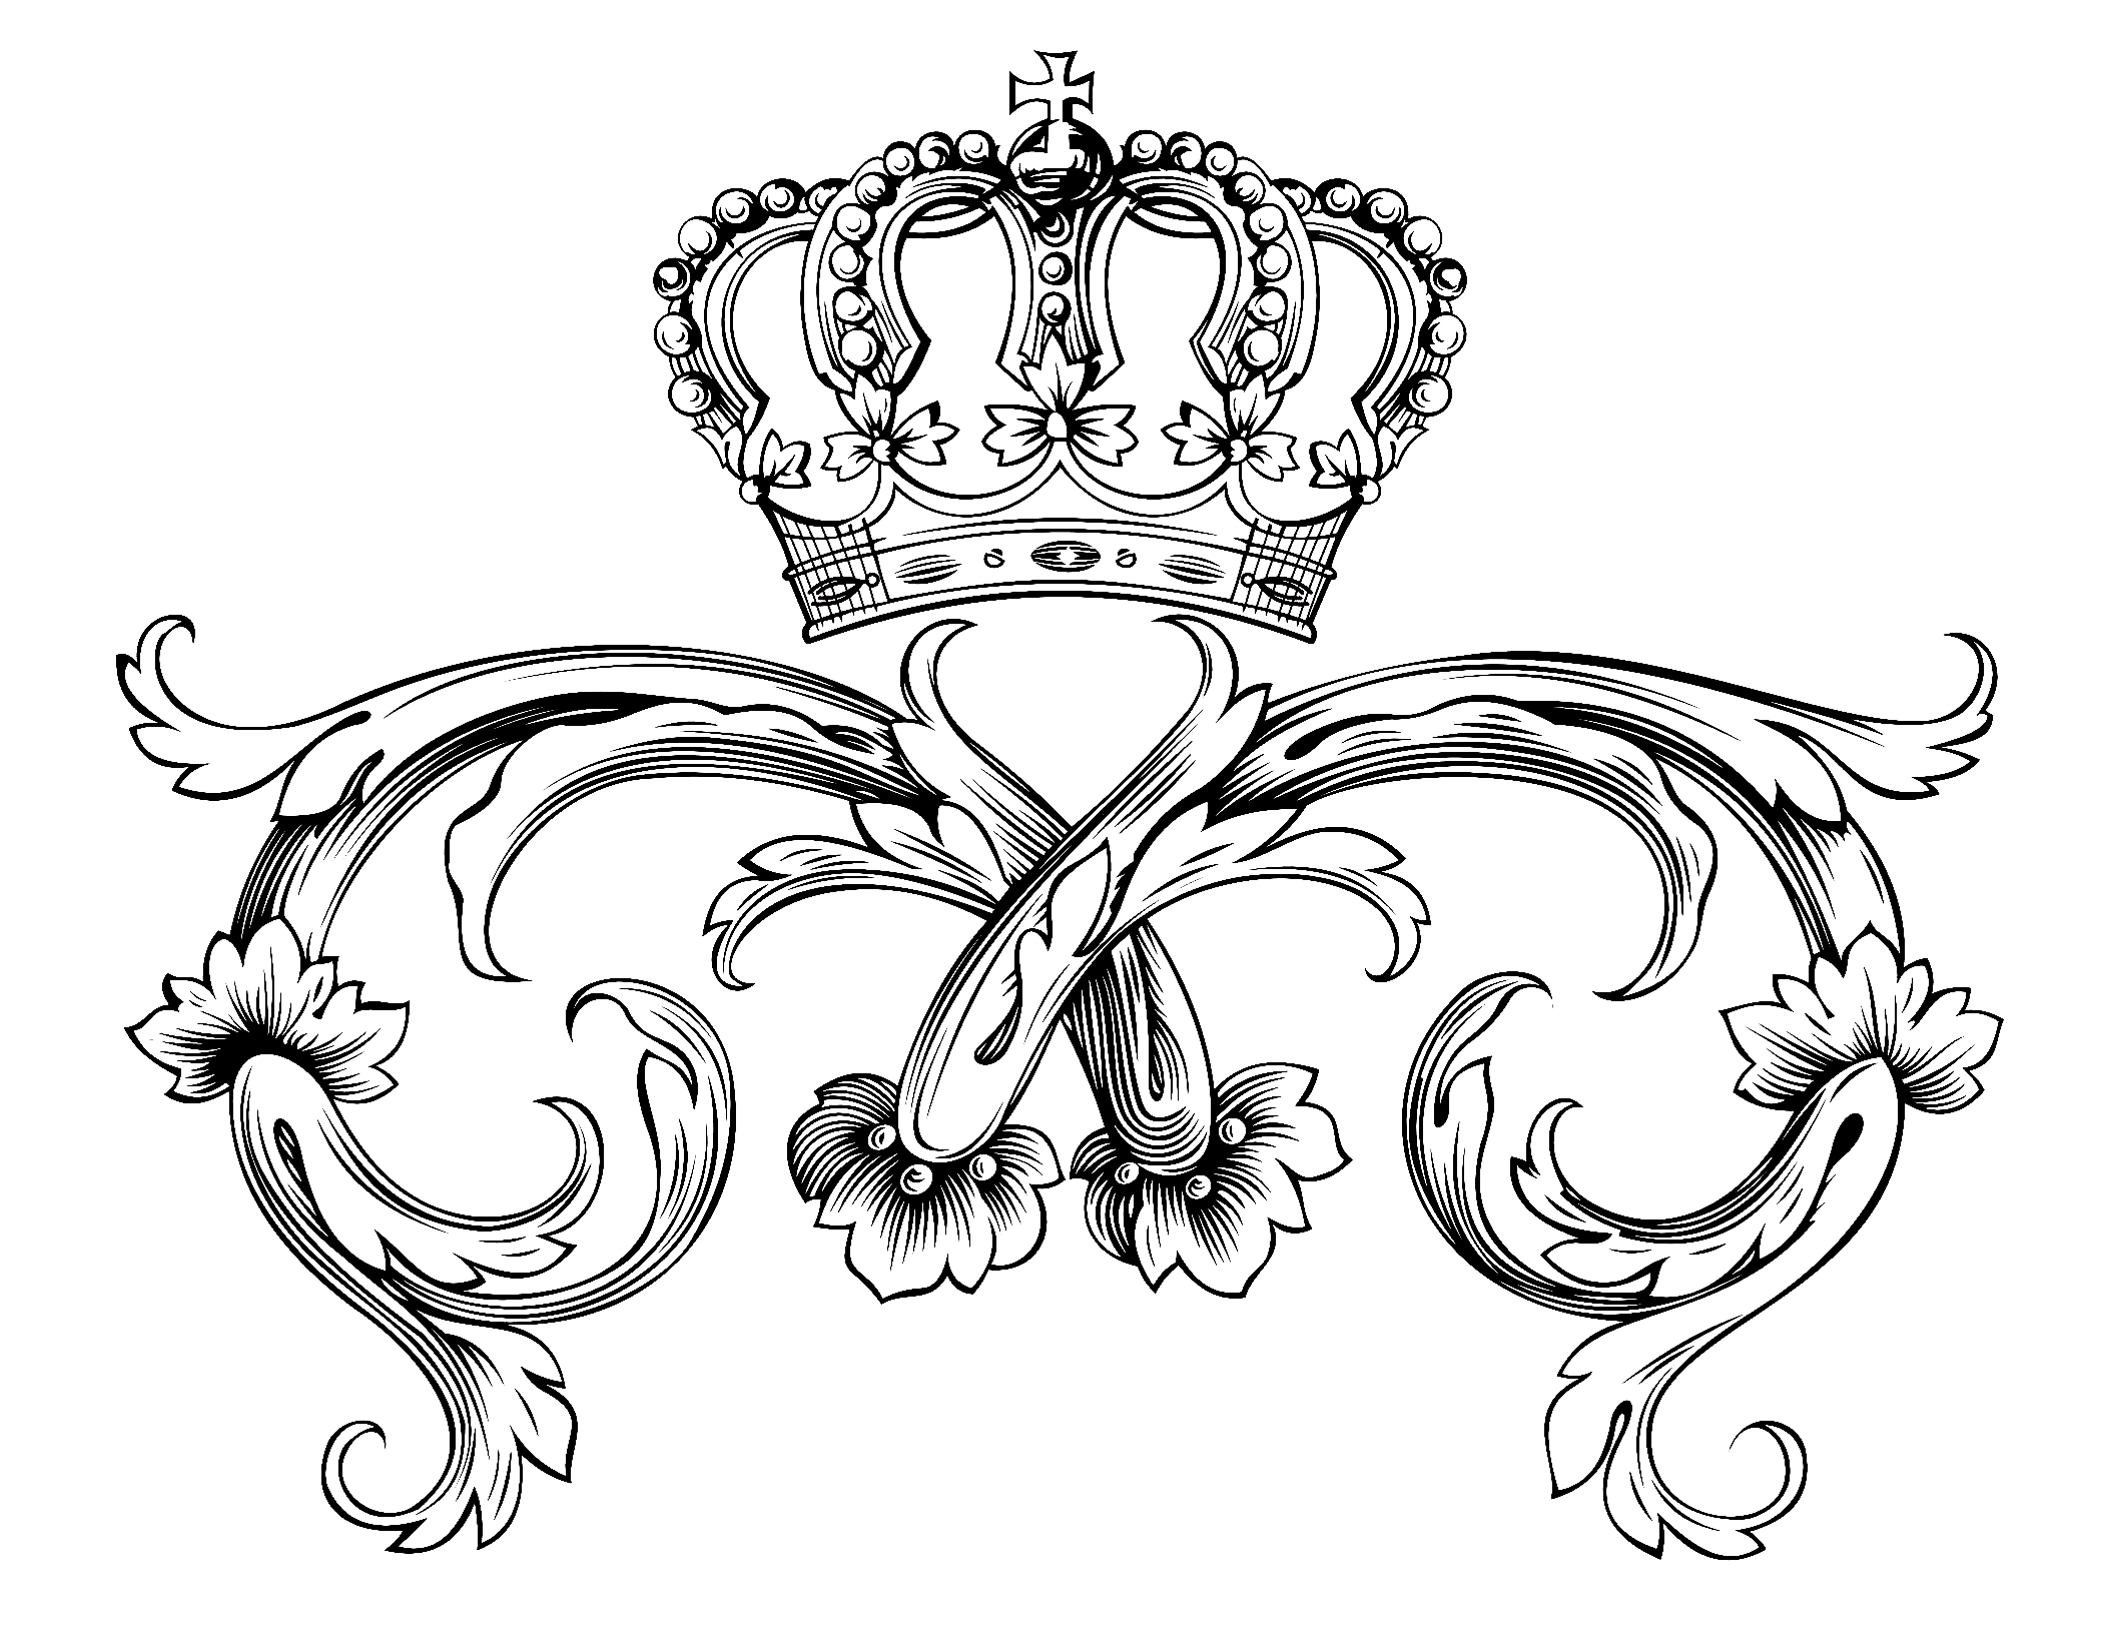 Royal symbol with crown